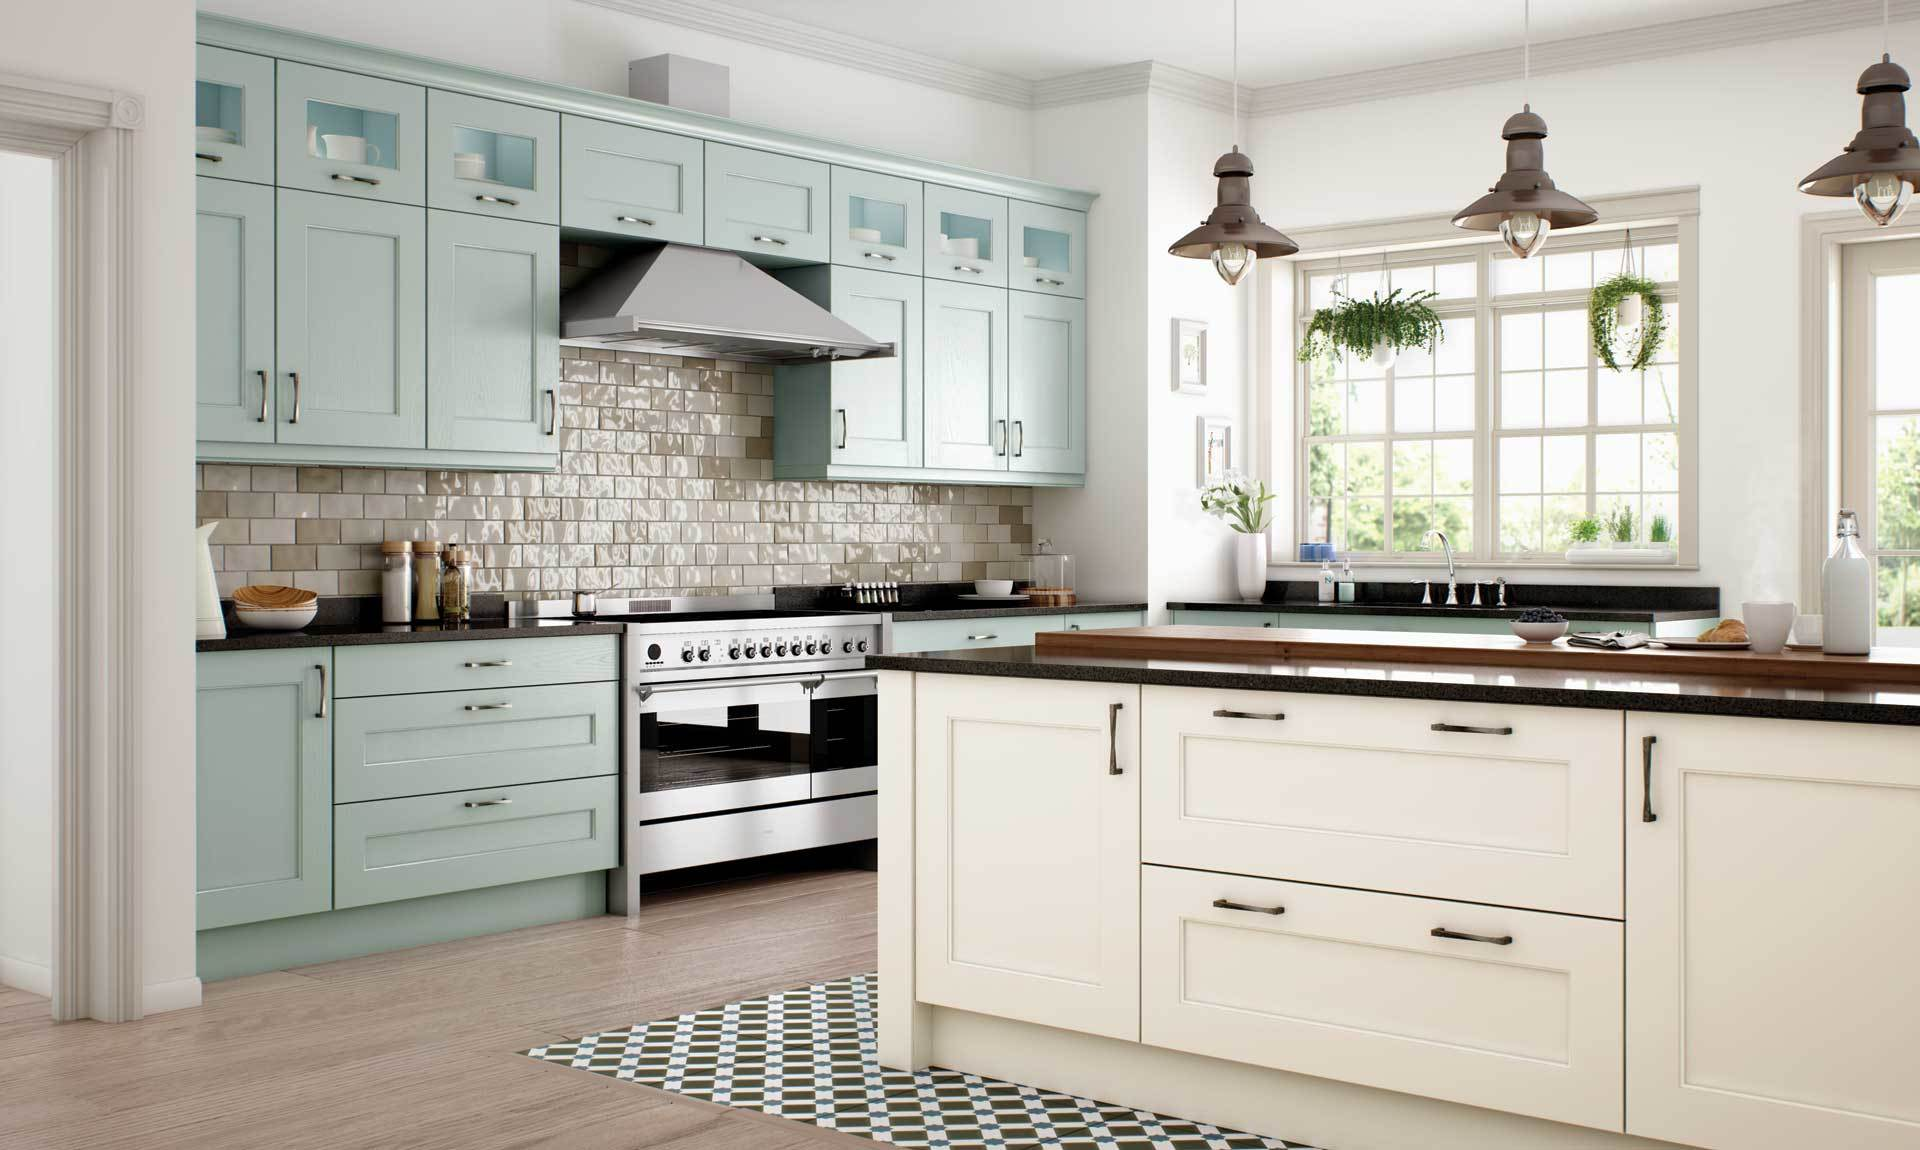 Bartley Kitchens - kitchen Installations